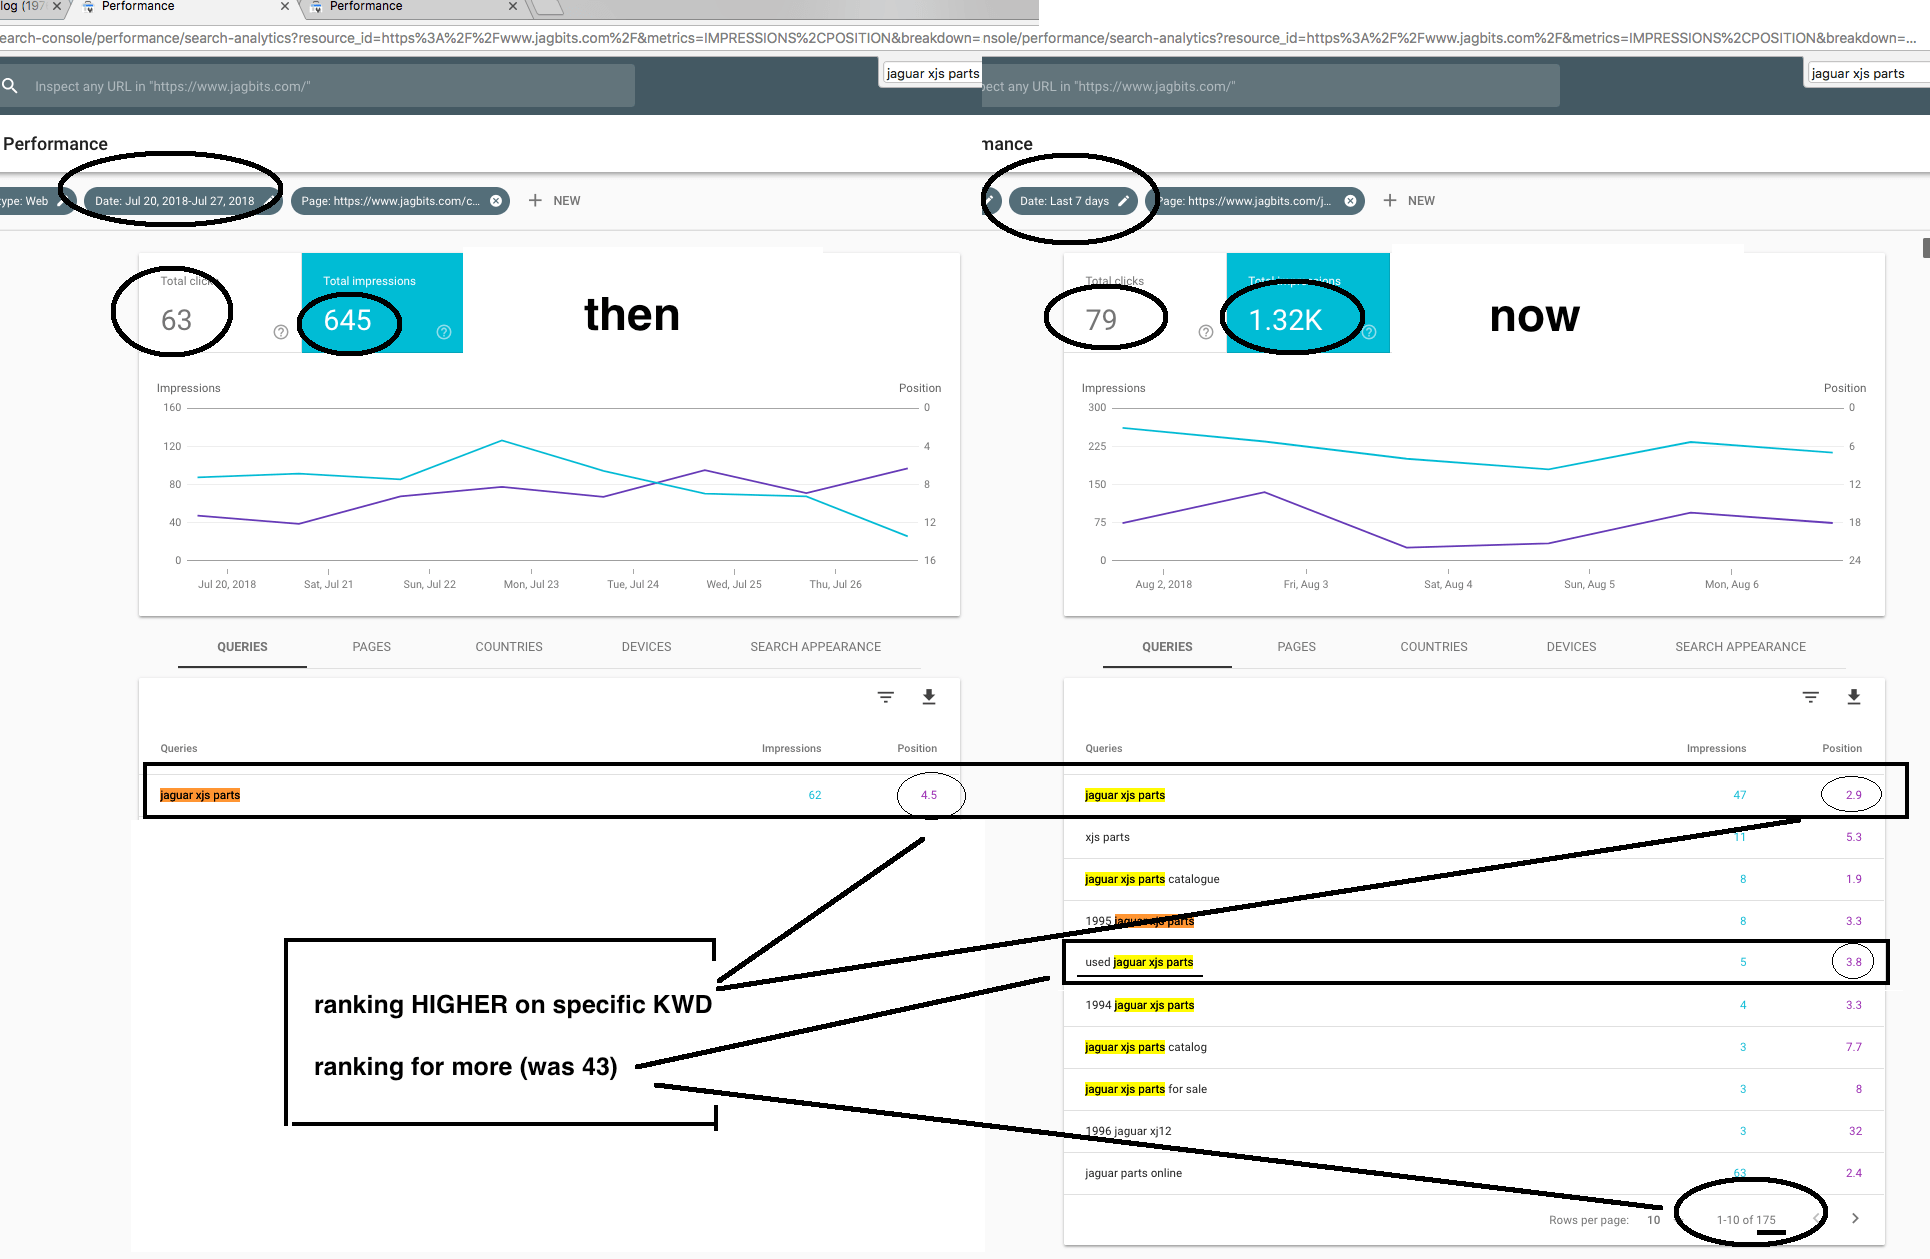 http://secretseo.guru/assets/ranking-higher-and-for-more.png